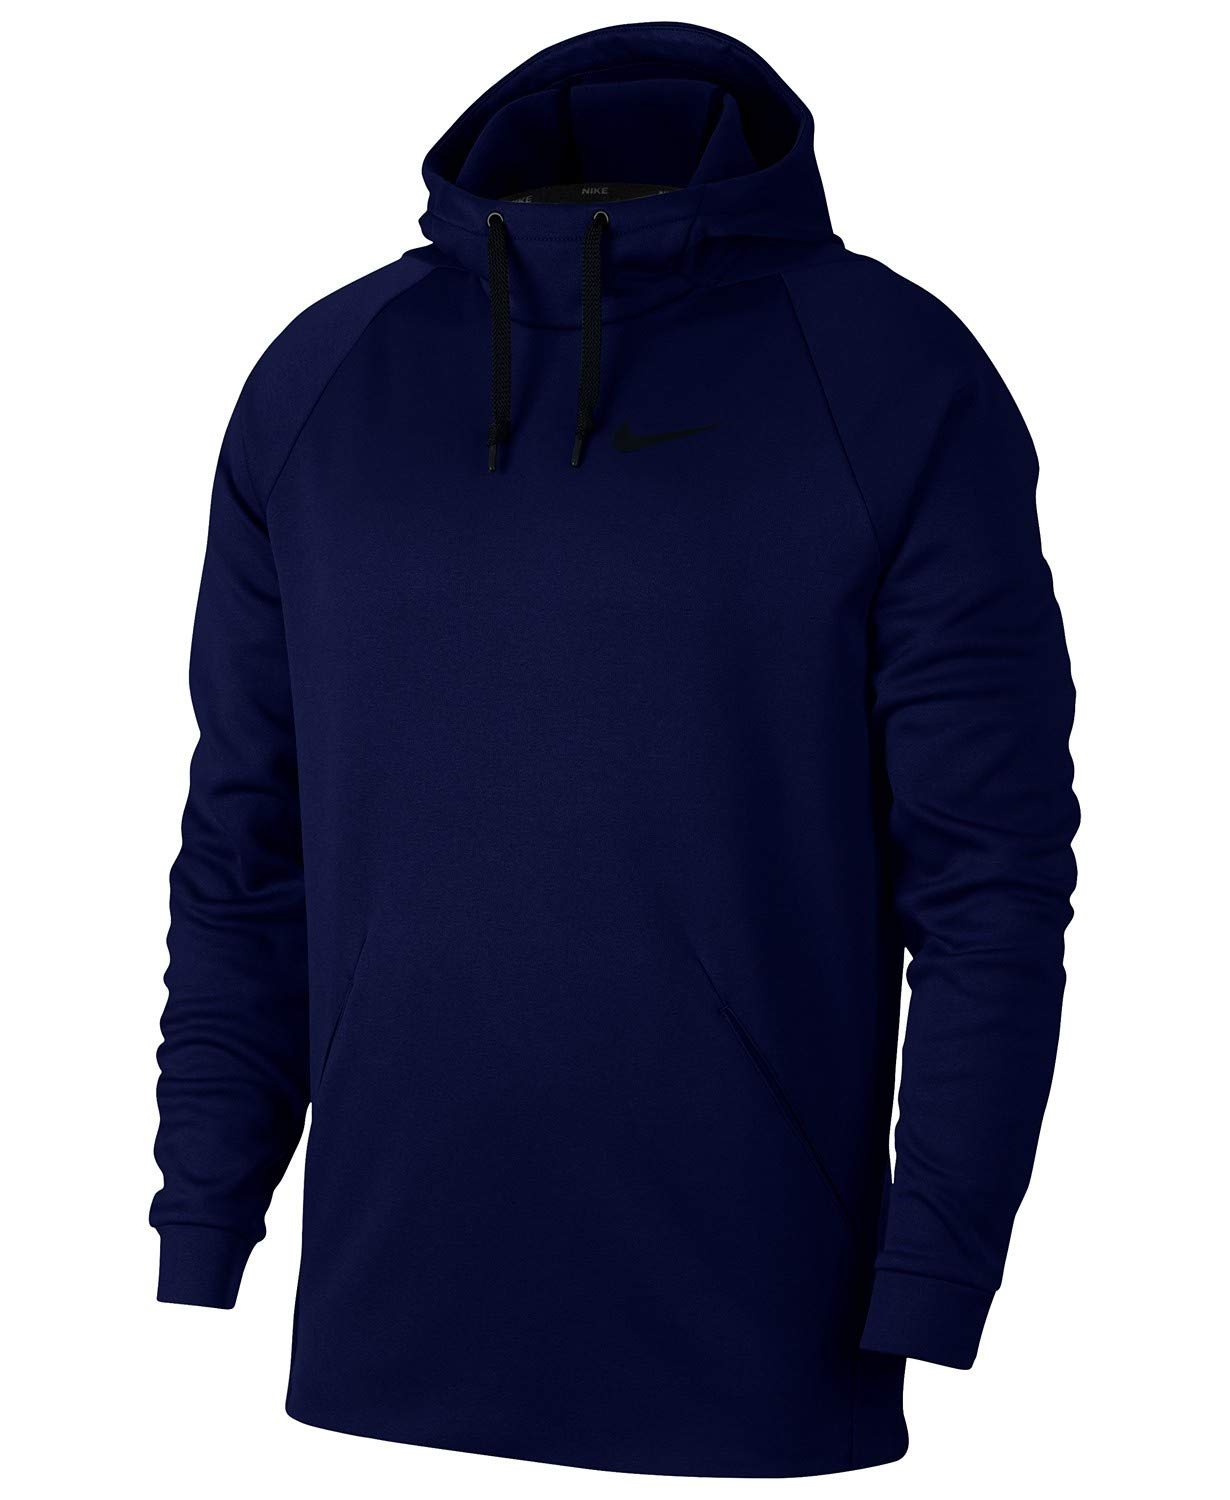 Nike M NK THRMA HD PO Men's Training Hoodie❗️Ships Directly from